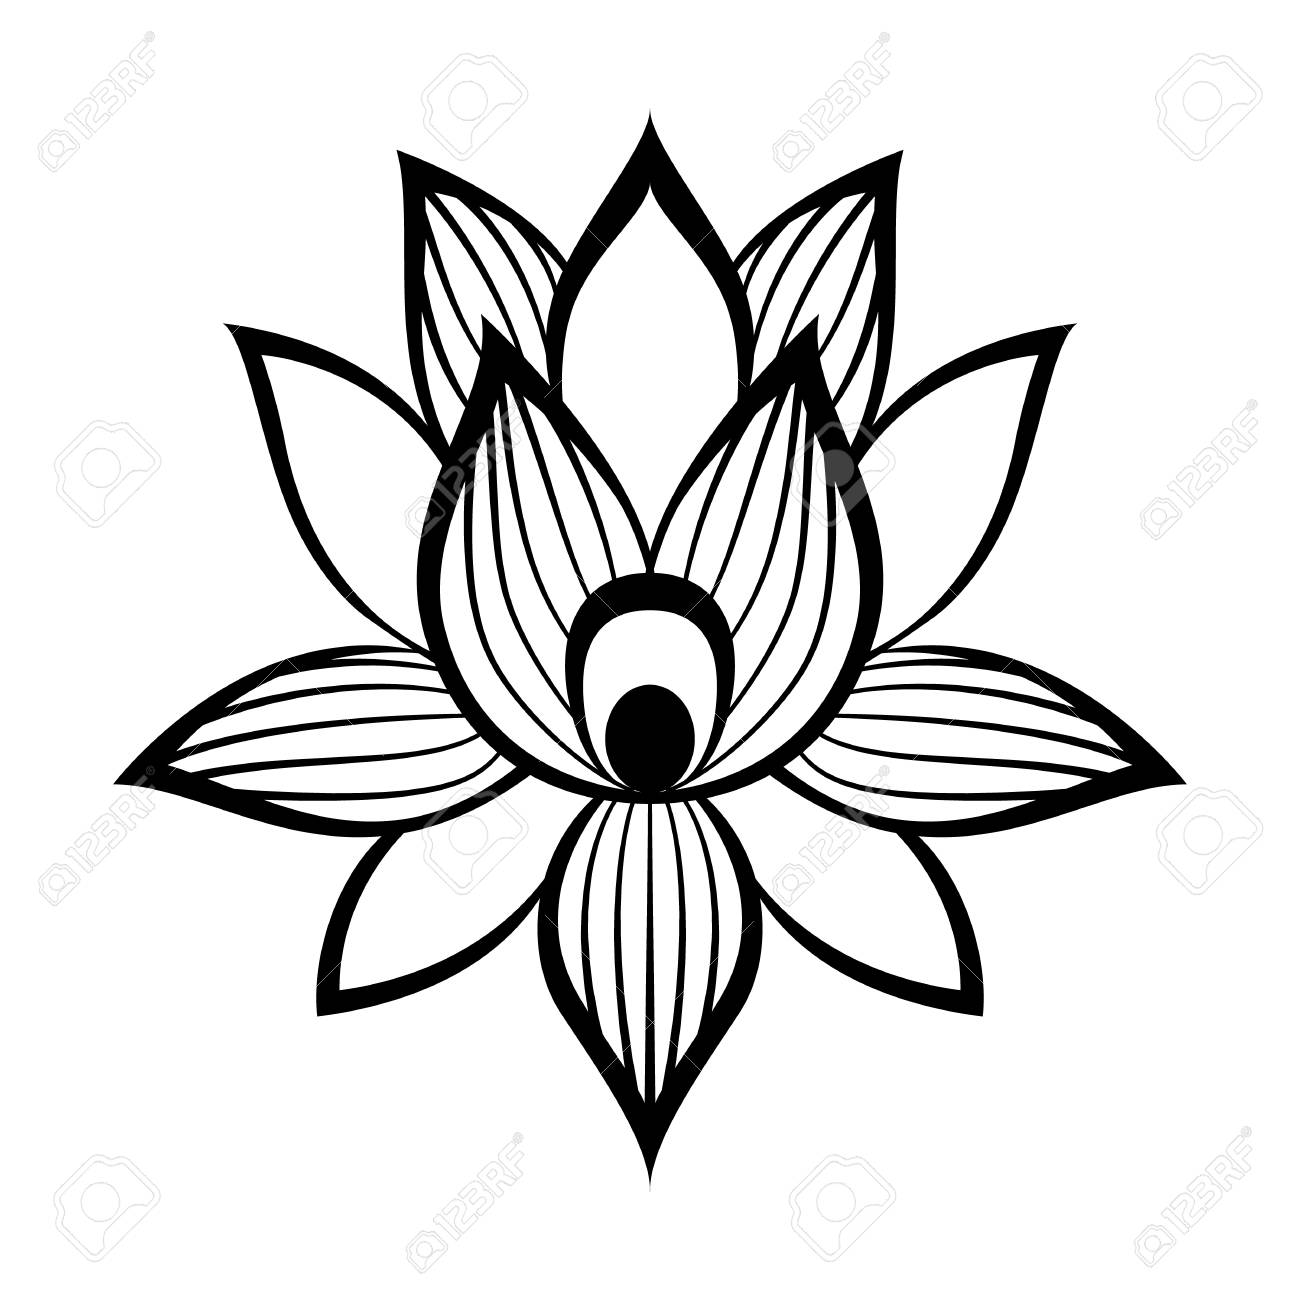 Lotus flower sign in simple style isolated on white royalty free lotus flower sign in simple style isolated on white stock vector 55597828 izmirmasajfo